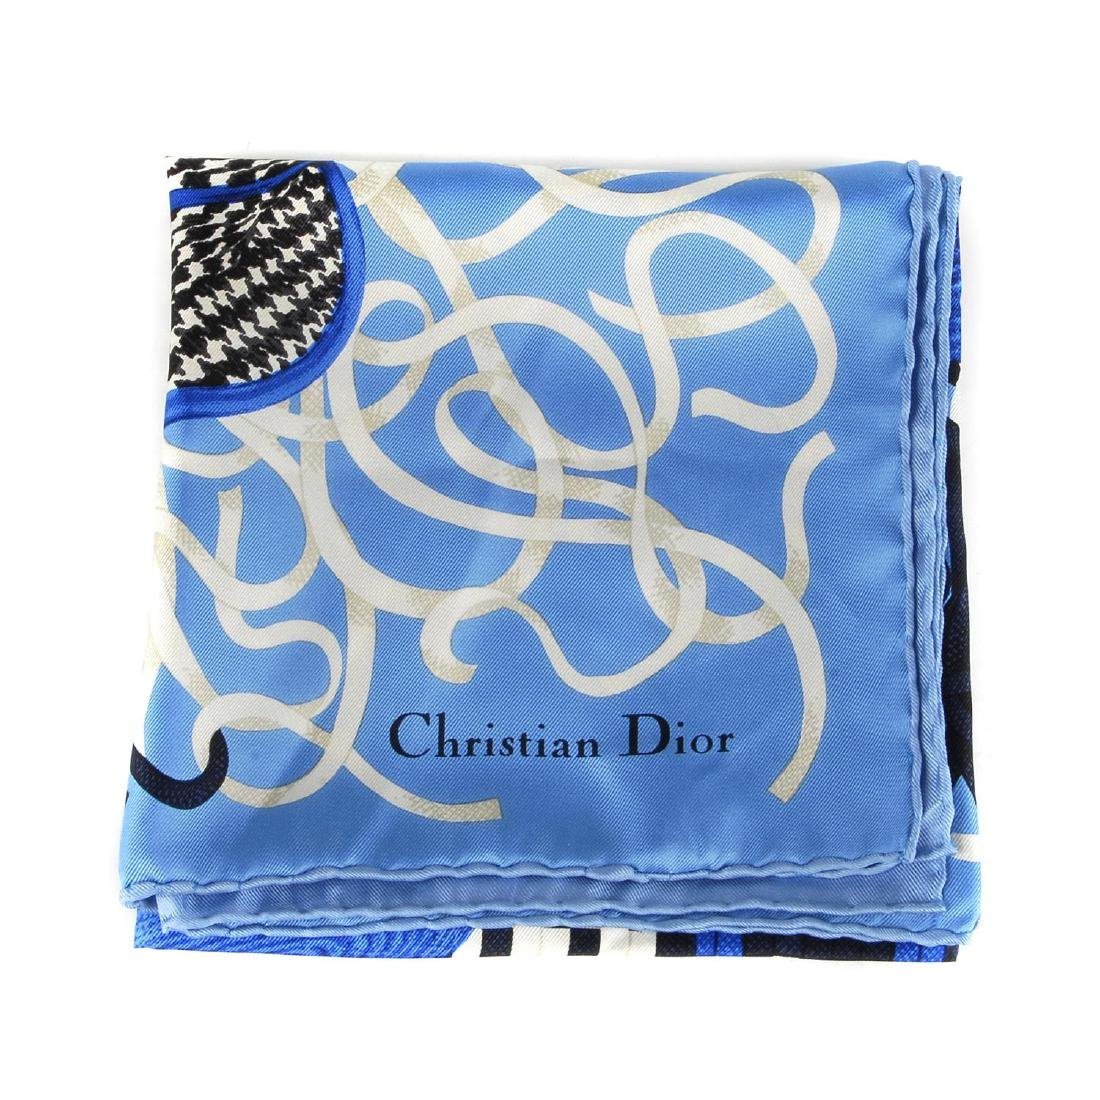 CHRISTIAN DIOR - a silk scarf. Featuring a selection of